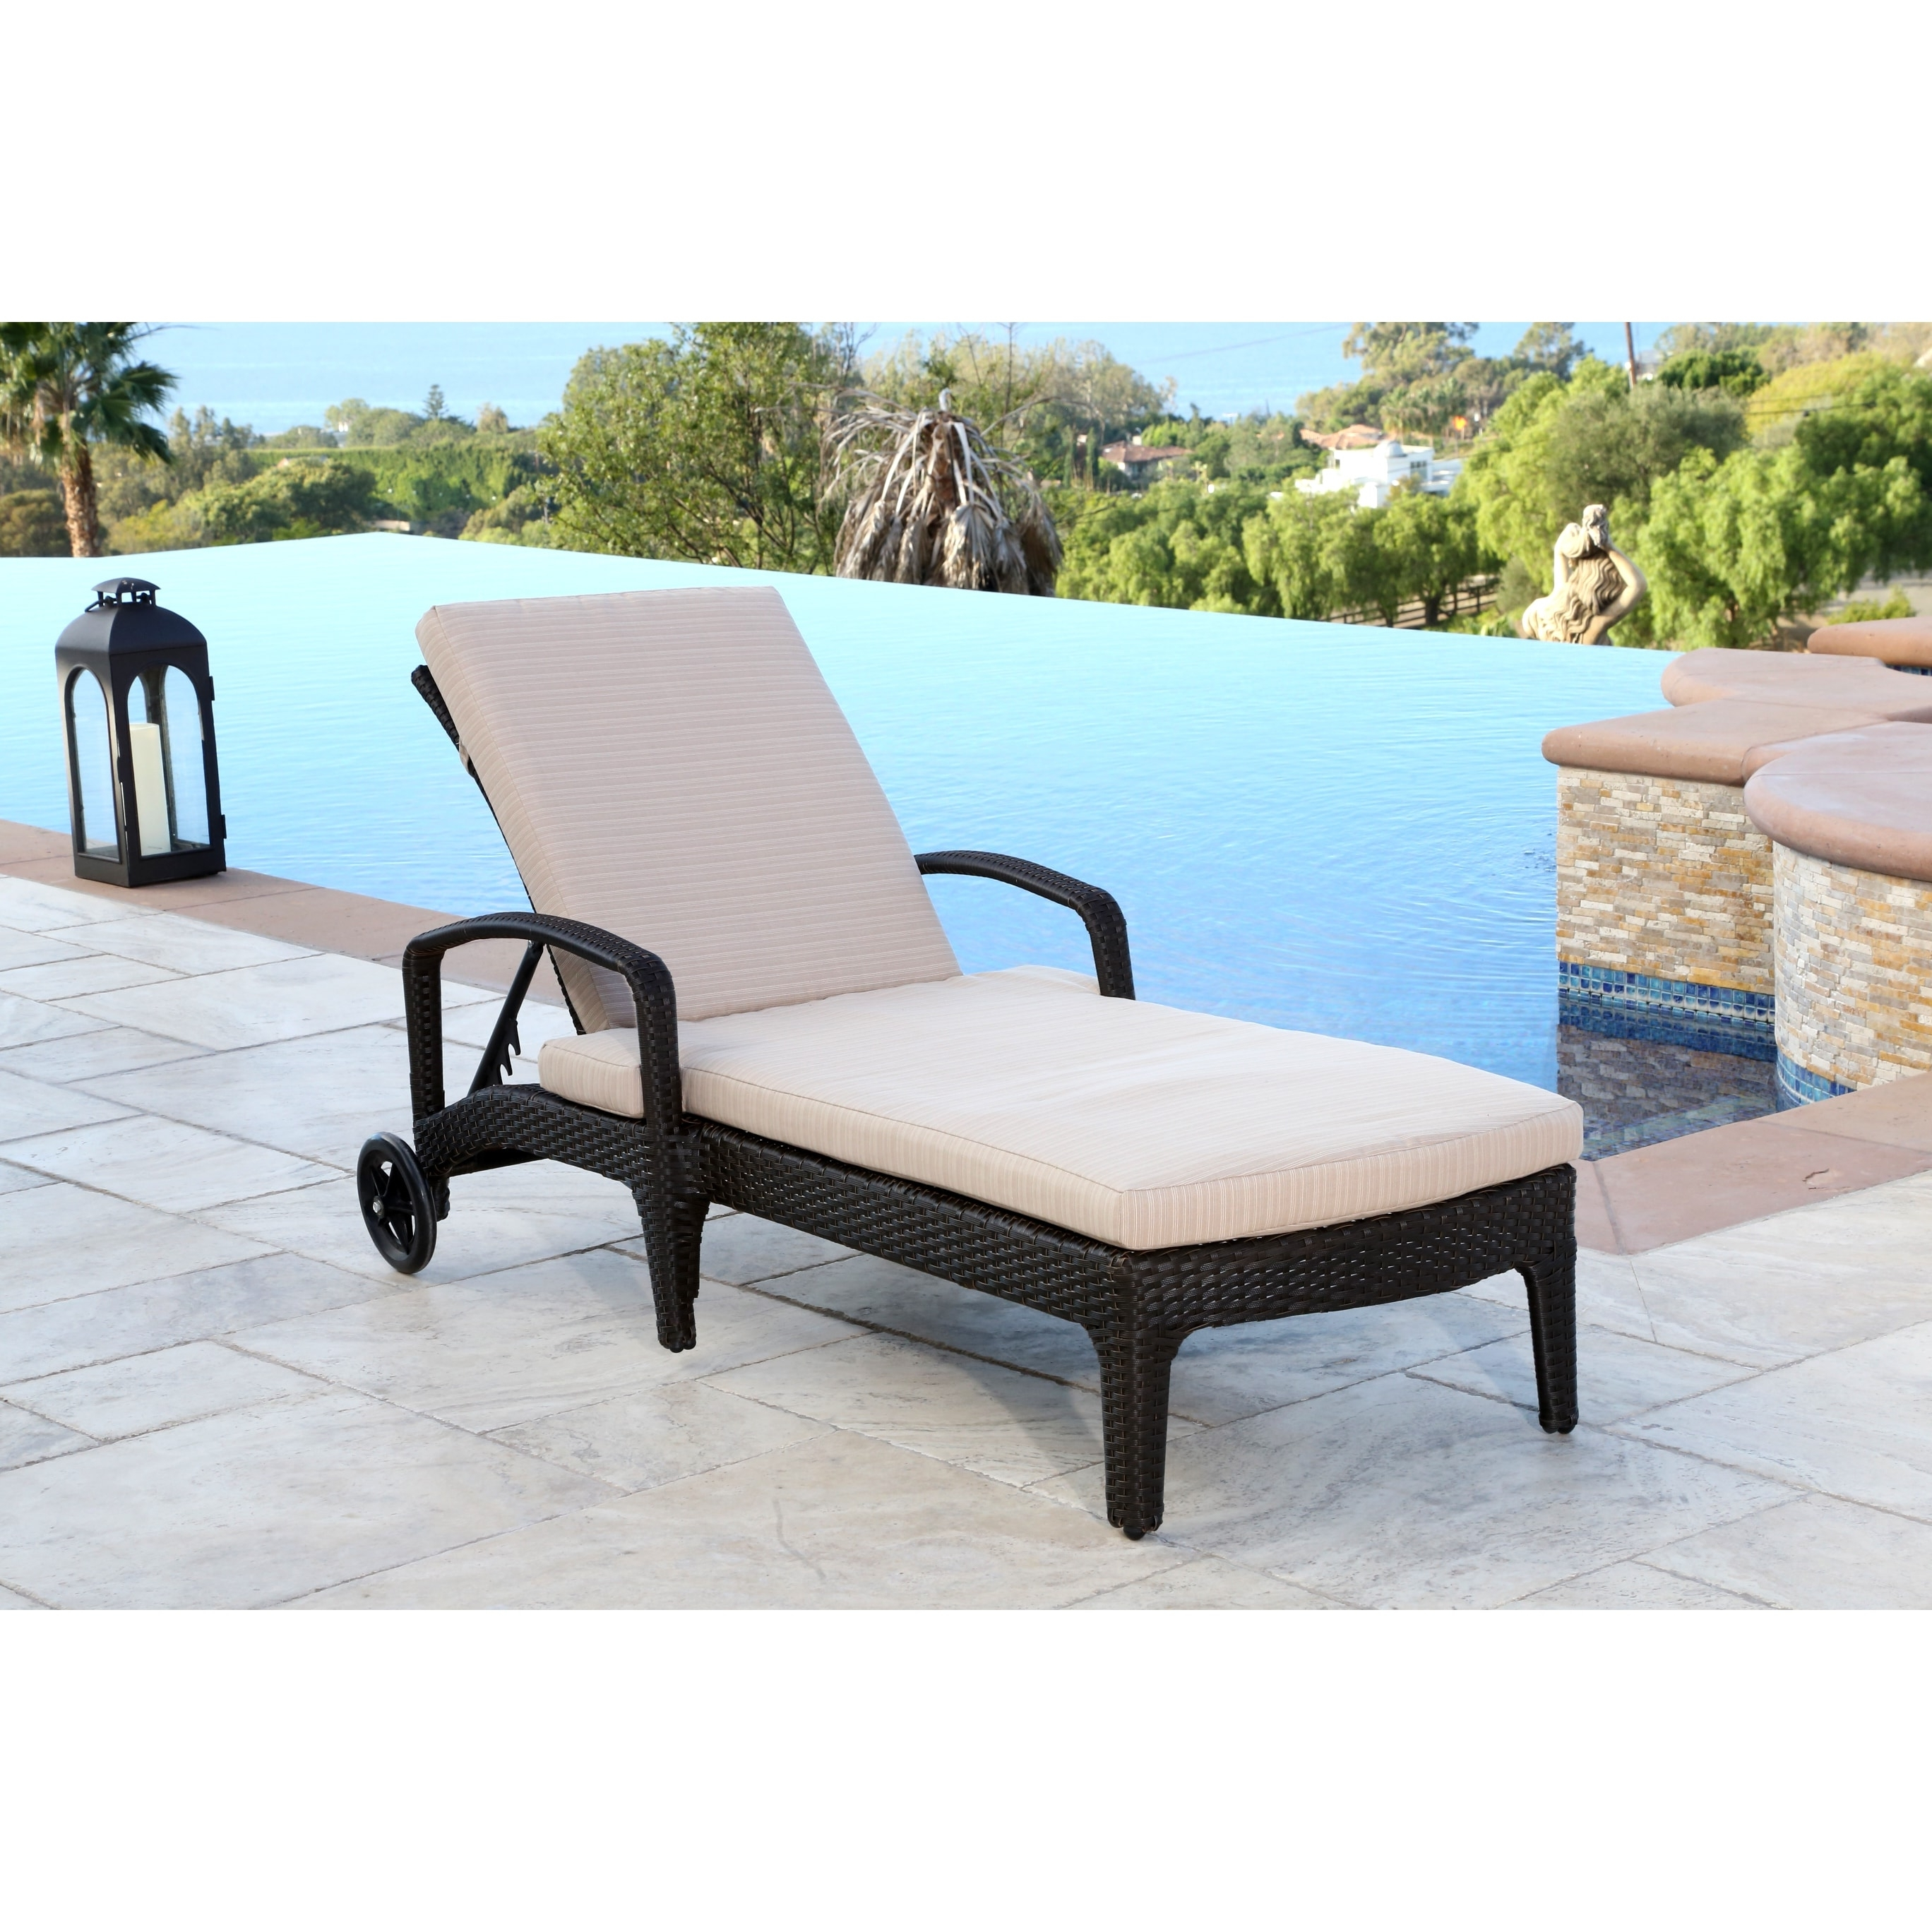 Abbyson Newport Outdoor Wicker Chaise Lounge – Free Shipping Today Throughout Most Up To Date Newport Chaise Lounge Chairs (View 1 of 15)